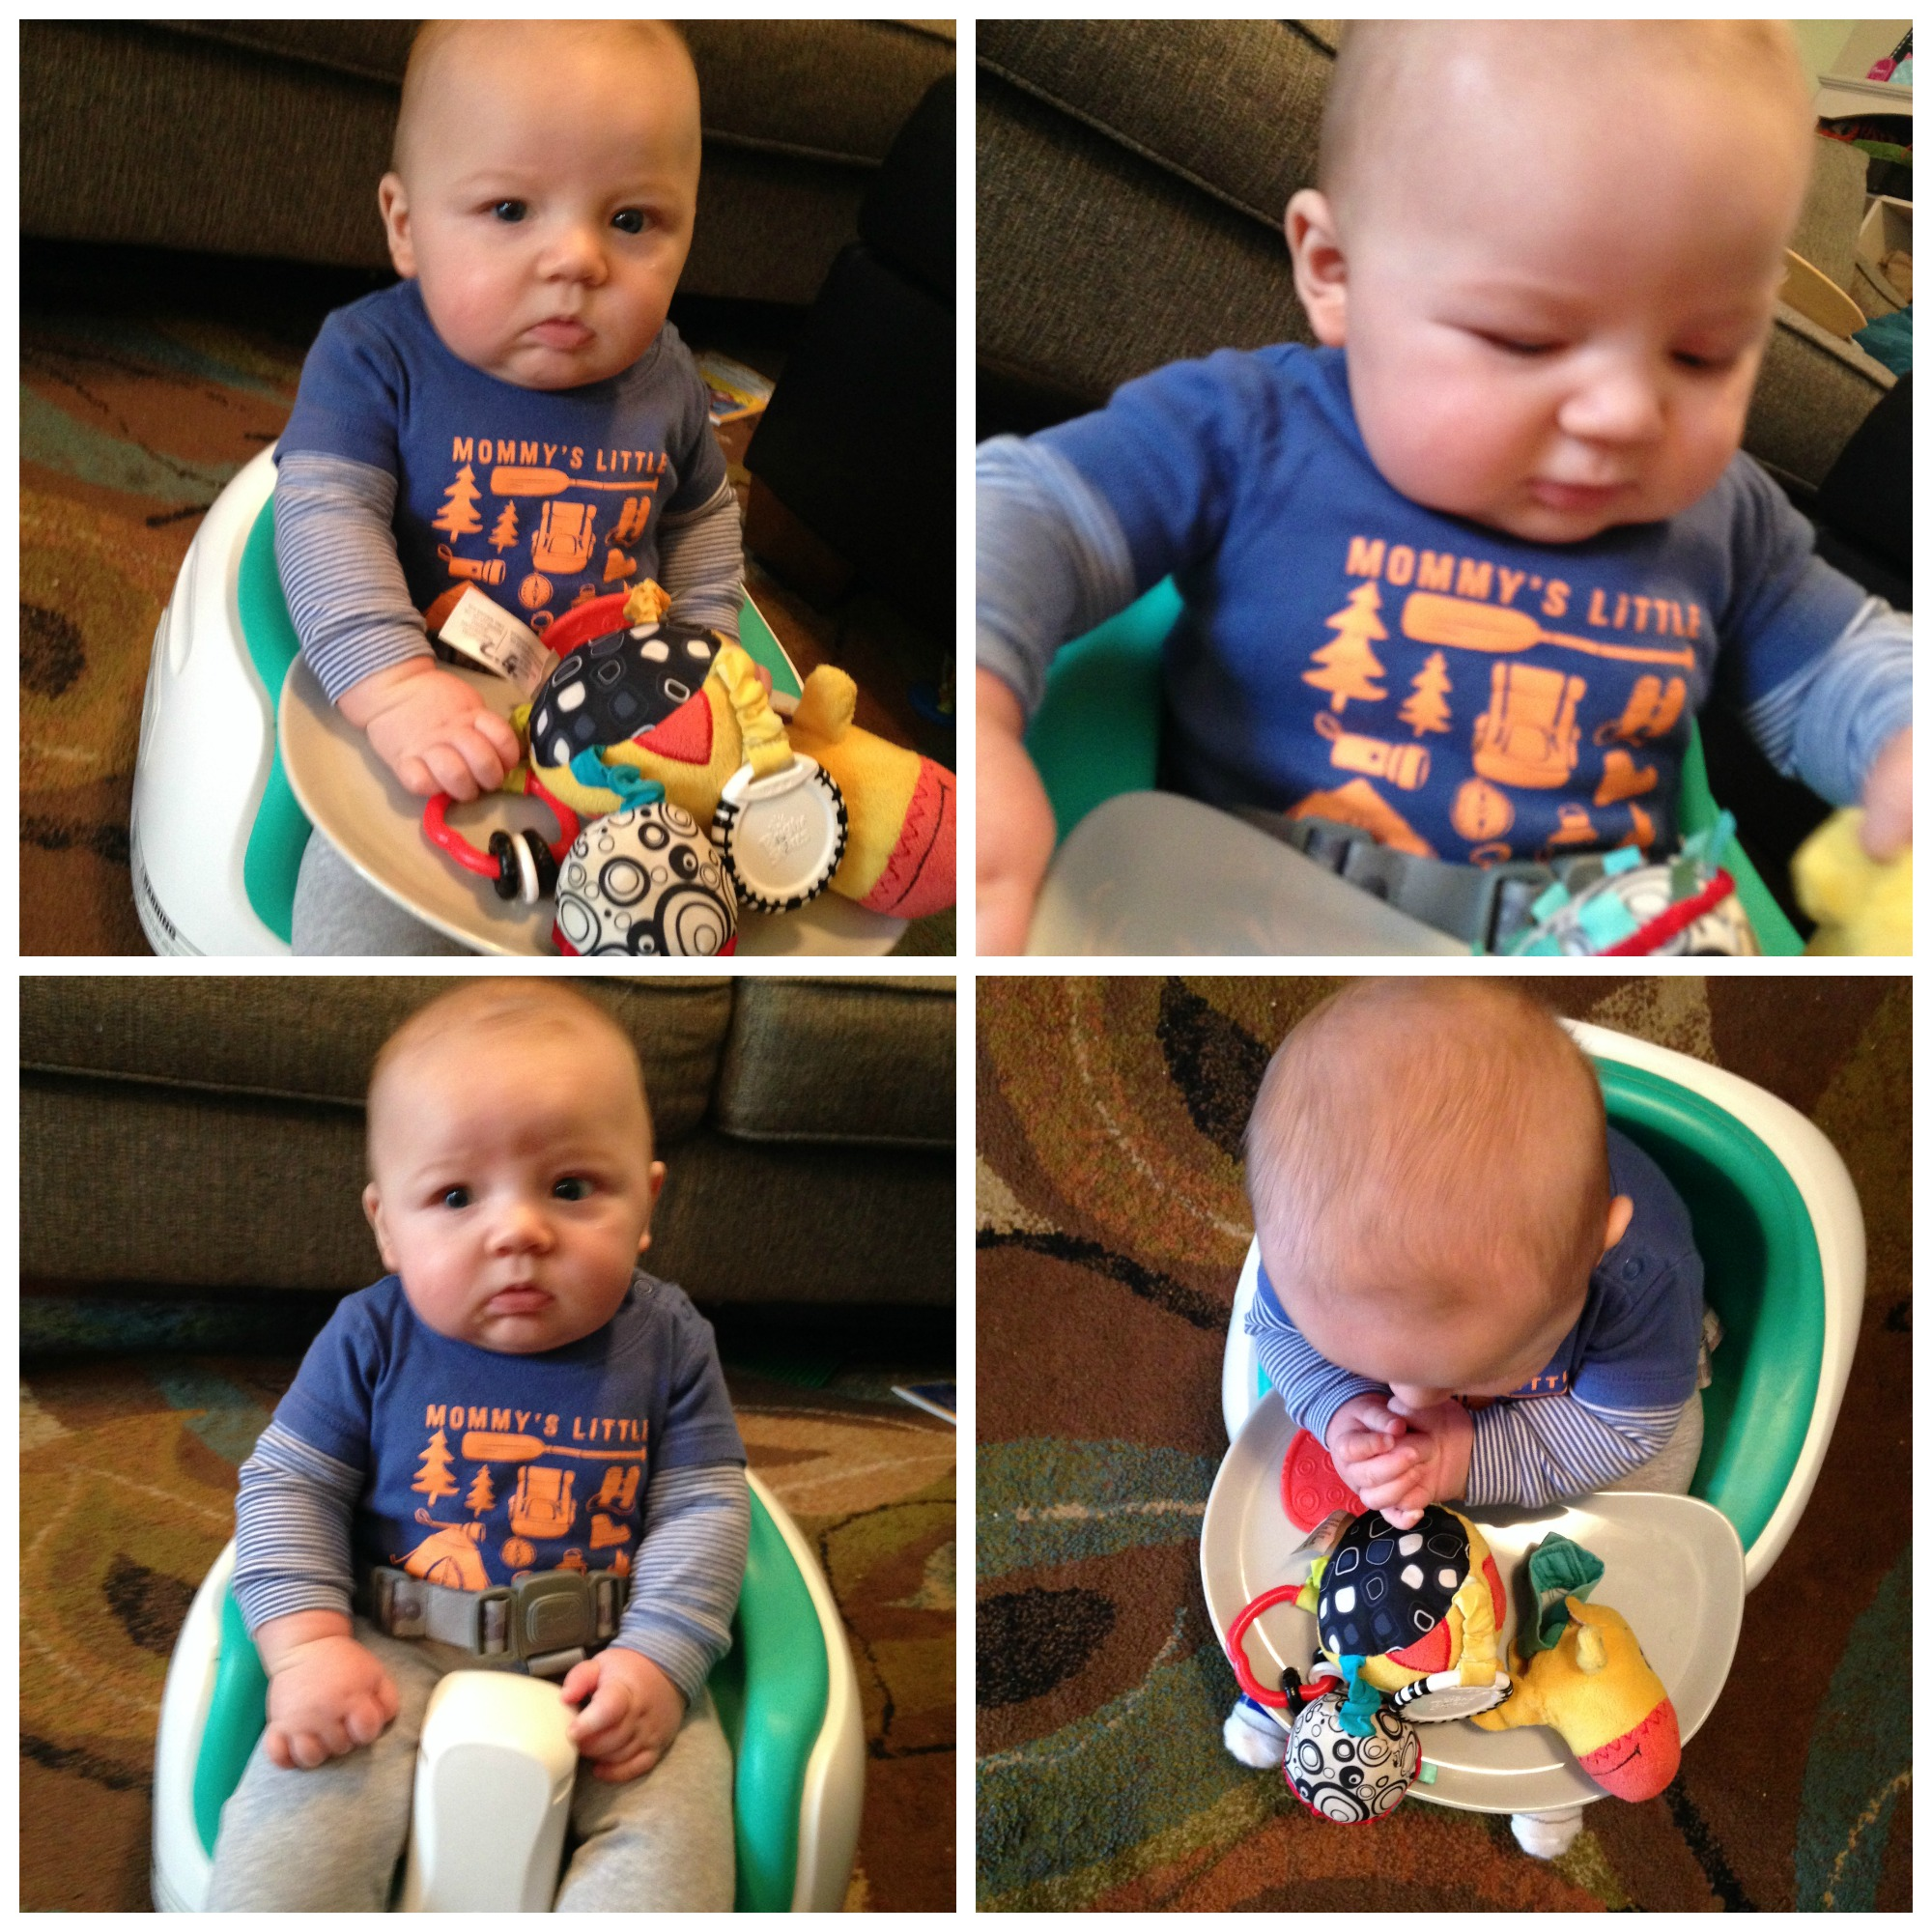 NEW Bumbo USA Multi Seat Review The Ultimate Seat from Floor to Chair